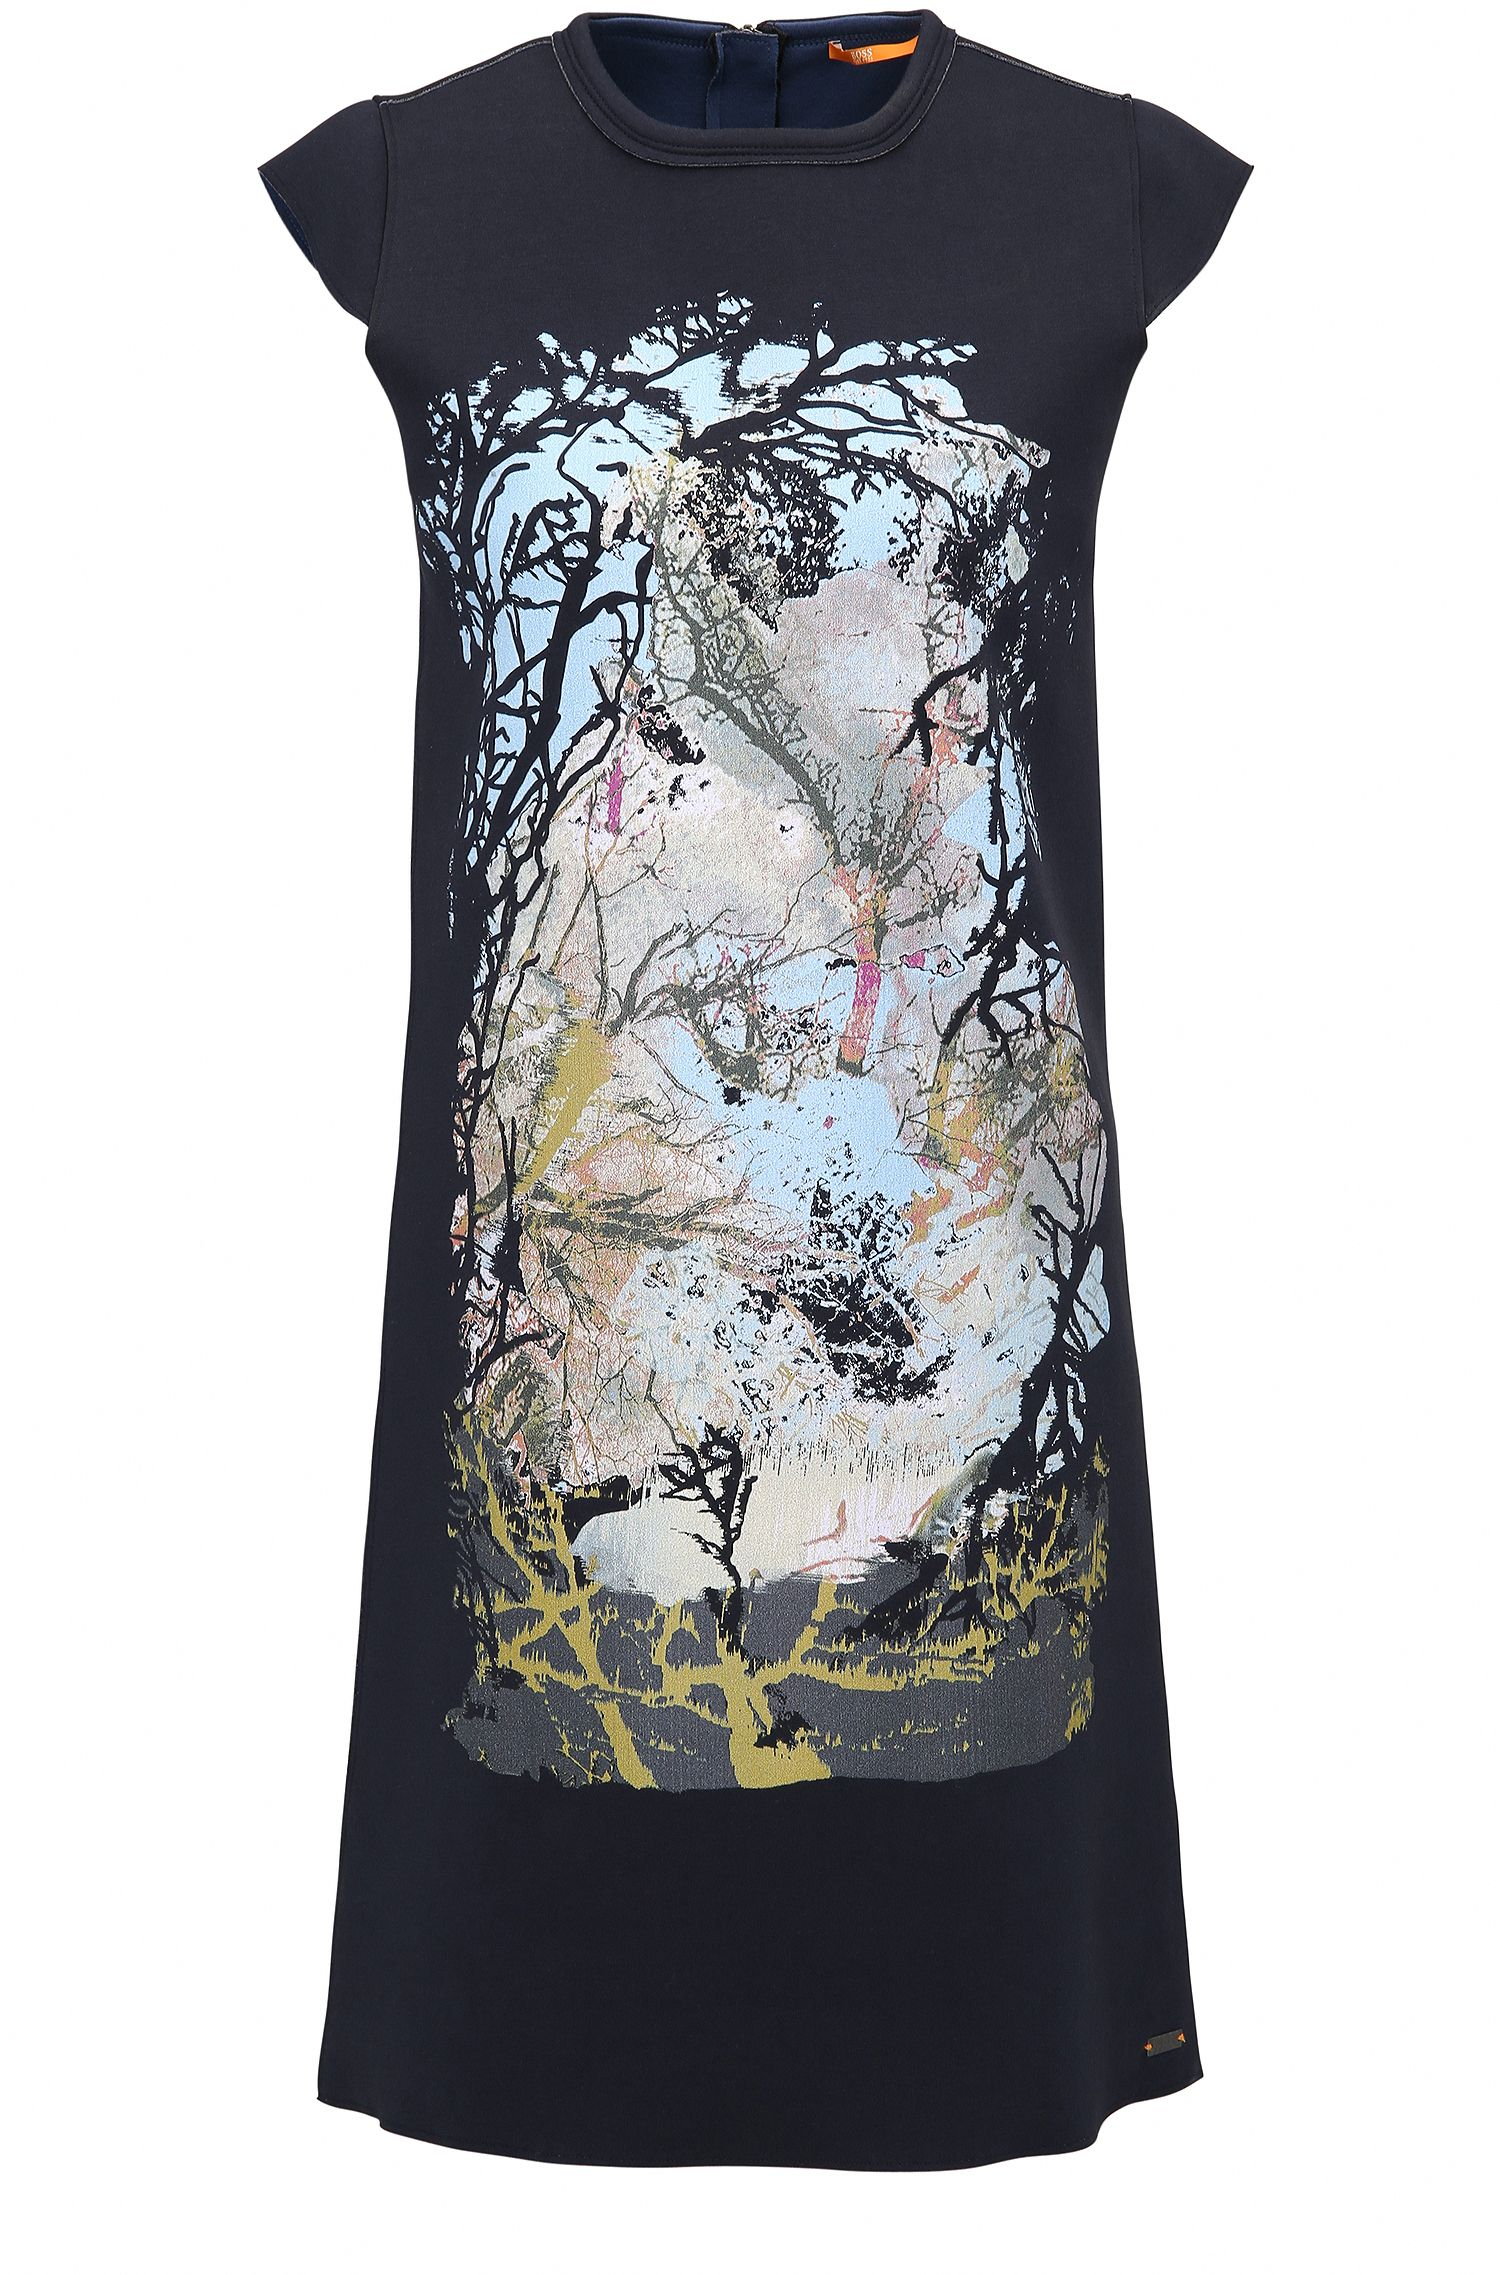 Bonded cotton jersey dress with nature-inspired print